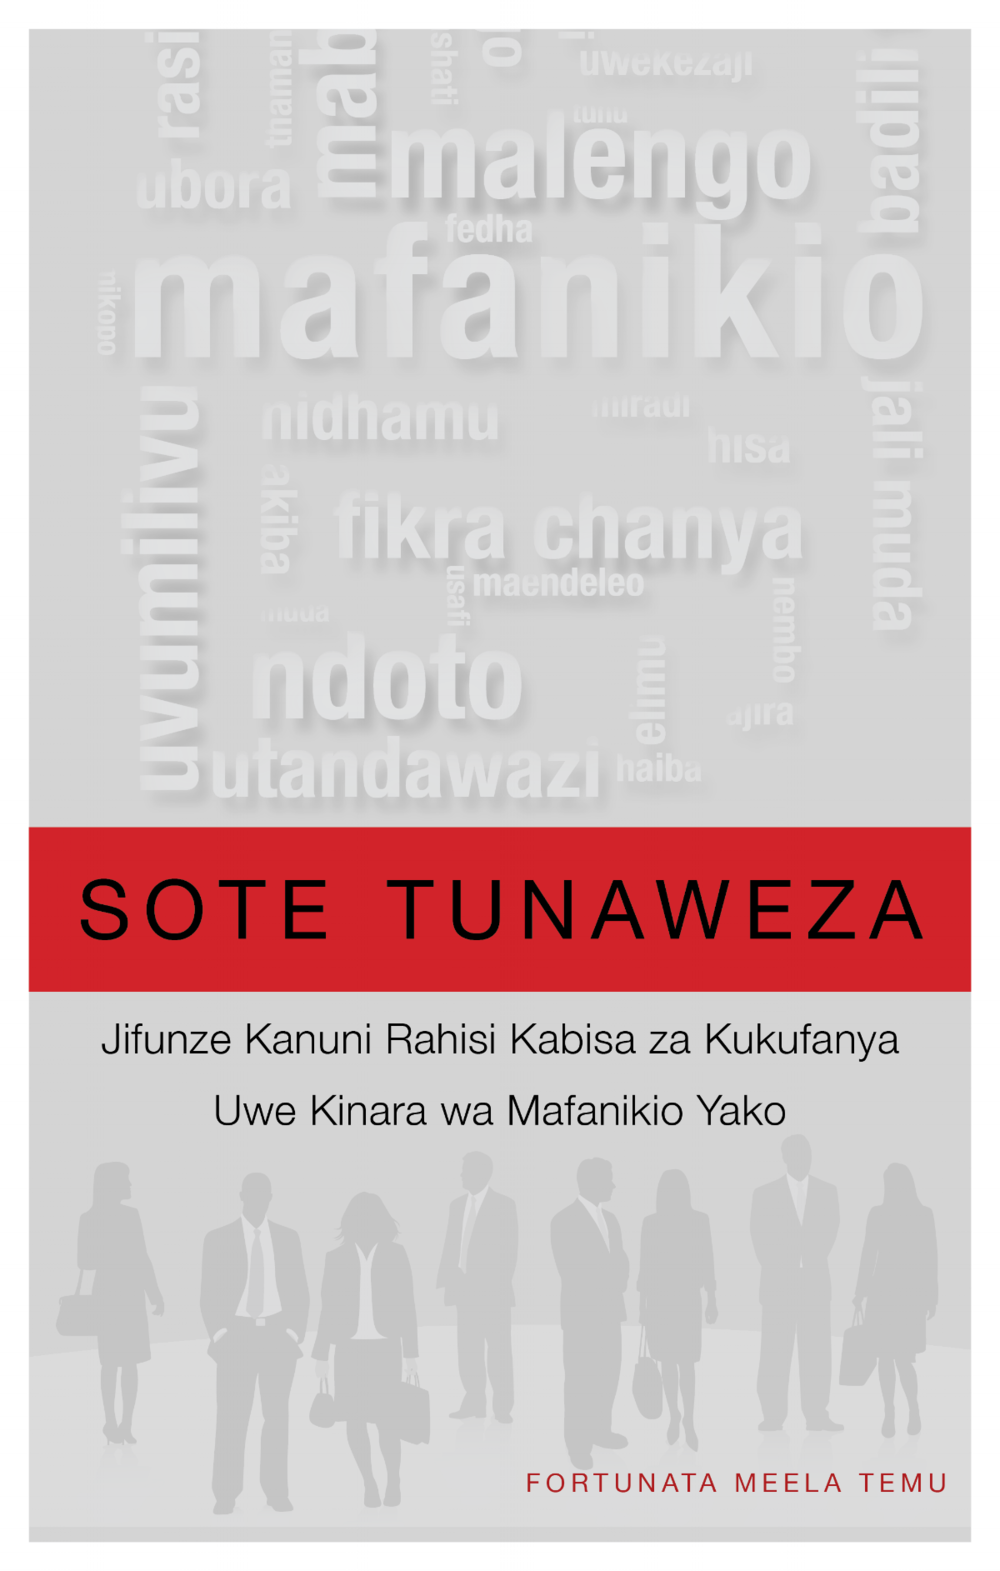 "- ""Sote Tunaweza"" which simply means ""We Can Do It!  is a must-read book for anyone who understands the Swahili Language and would like to improve on Soft Skills, Customer Service, Time Management, Building lasting fruitful relationships, Investing for the future and Cross-cultural competencies development.  The writer has profiled highly successful business men and women from across the globe and within the Africa region including Tanzania where she originates from."